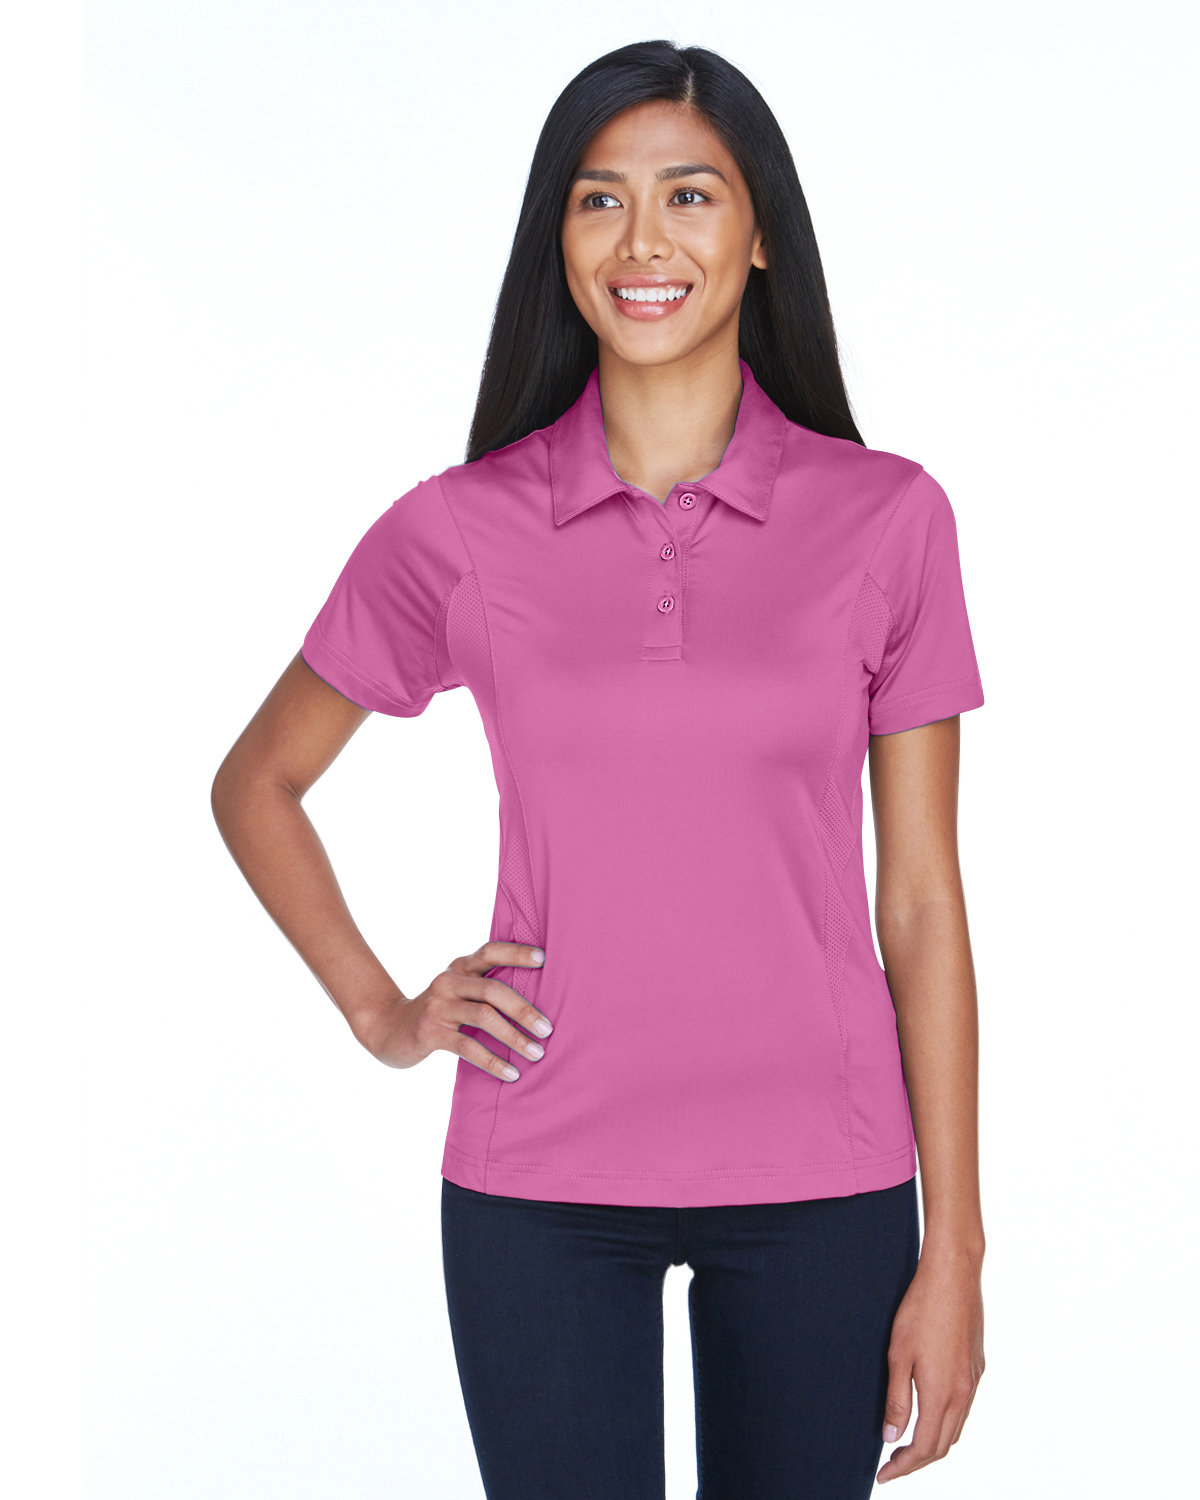 Team 365 Ladies' Charger Performance Polo SPORT CHRTY PINK